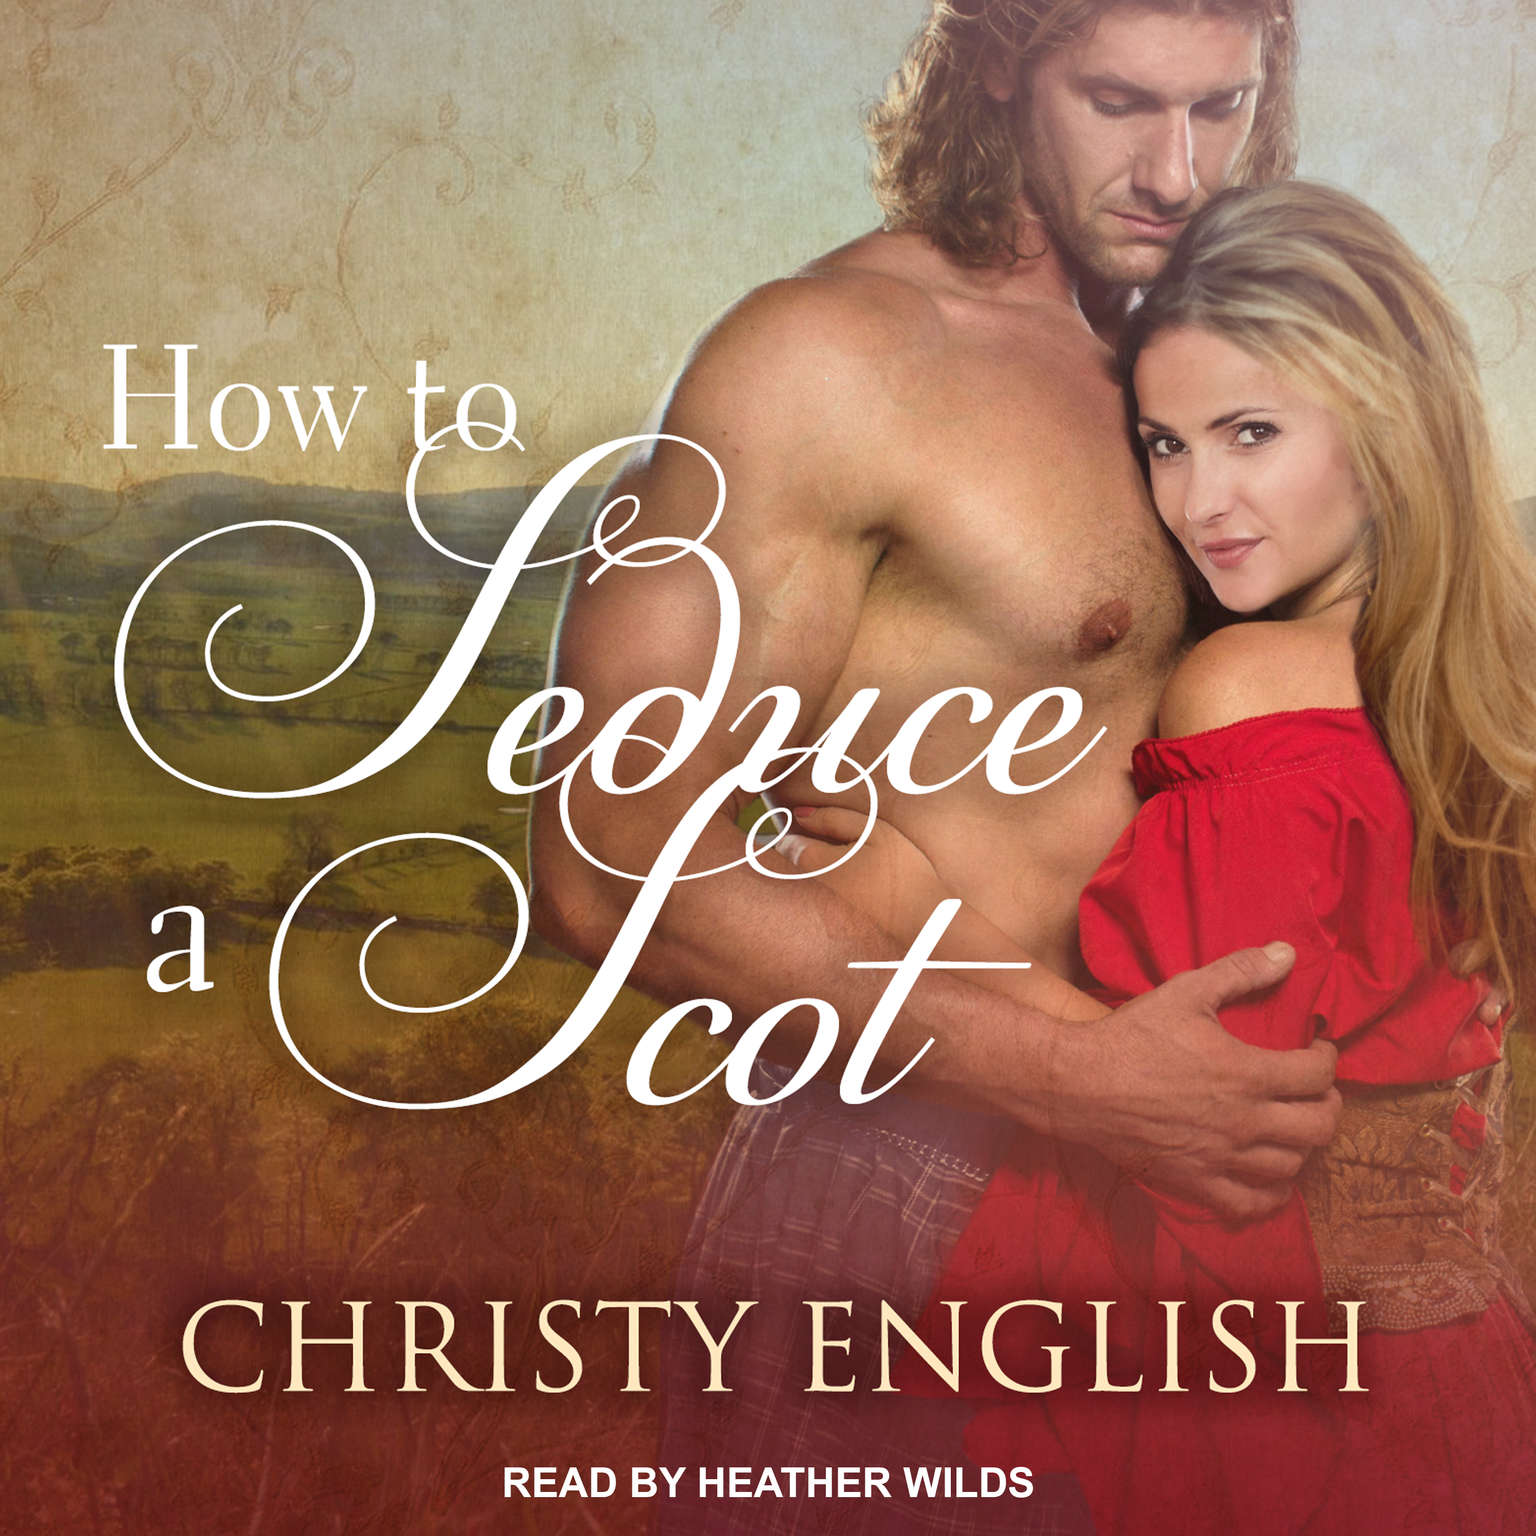 How to Seduce a Scot Audiobook, by Christy English